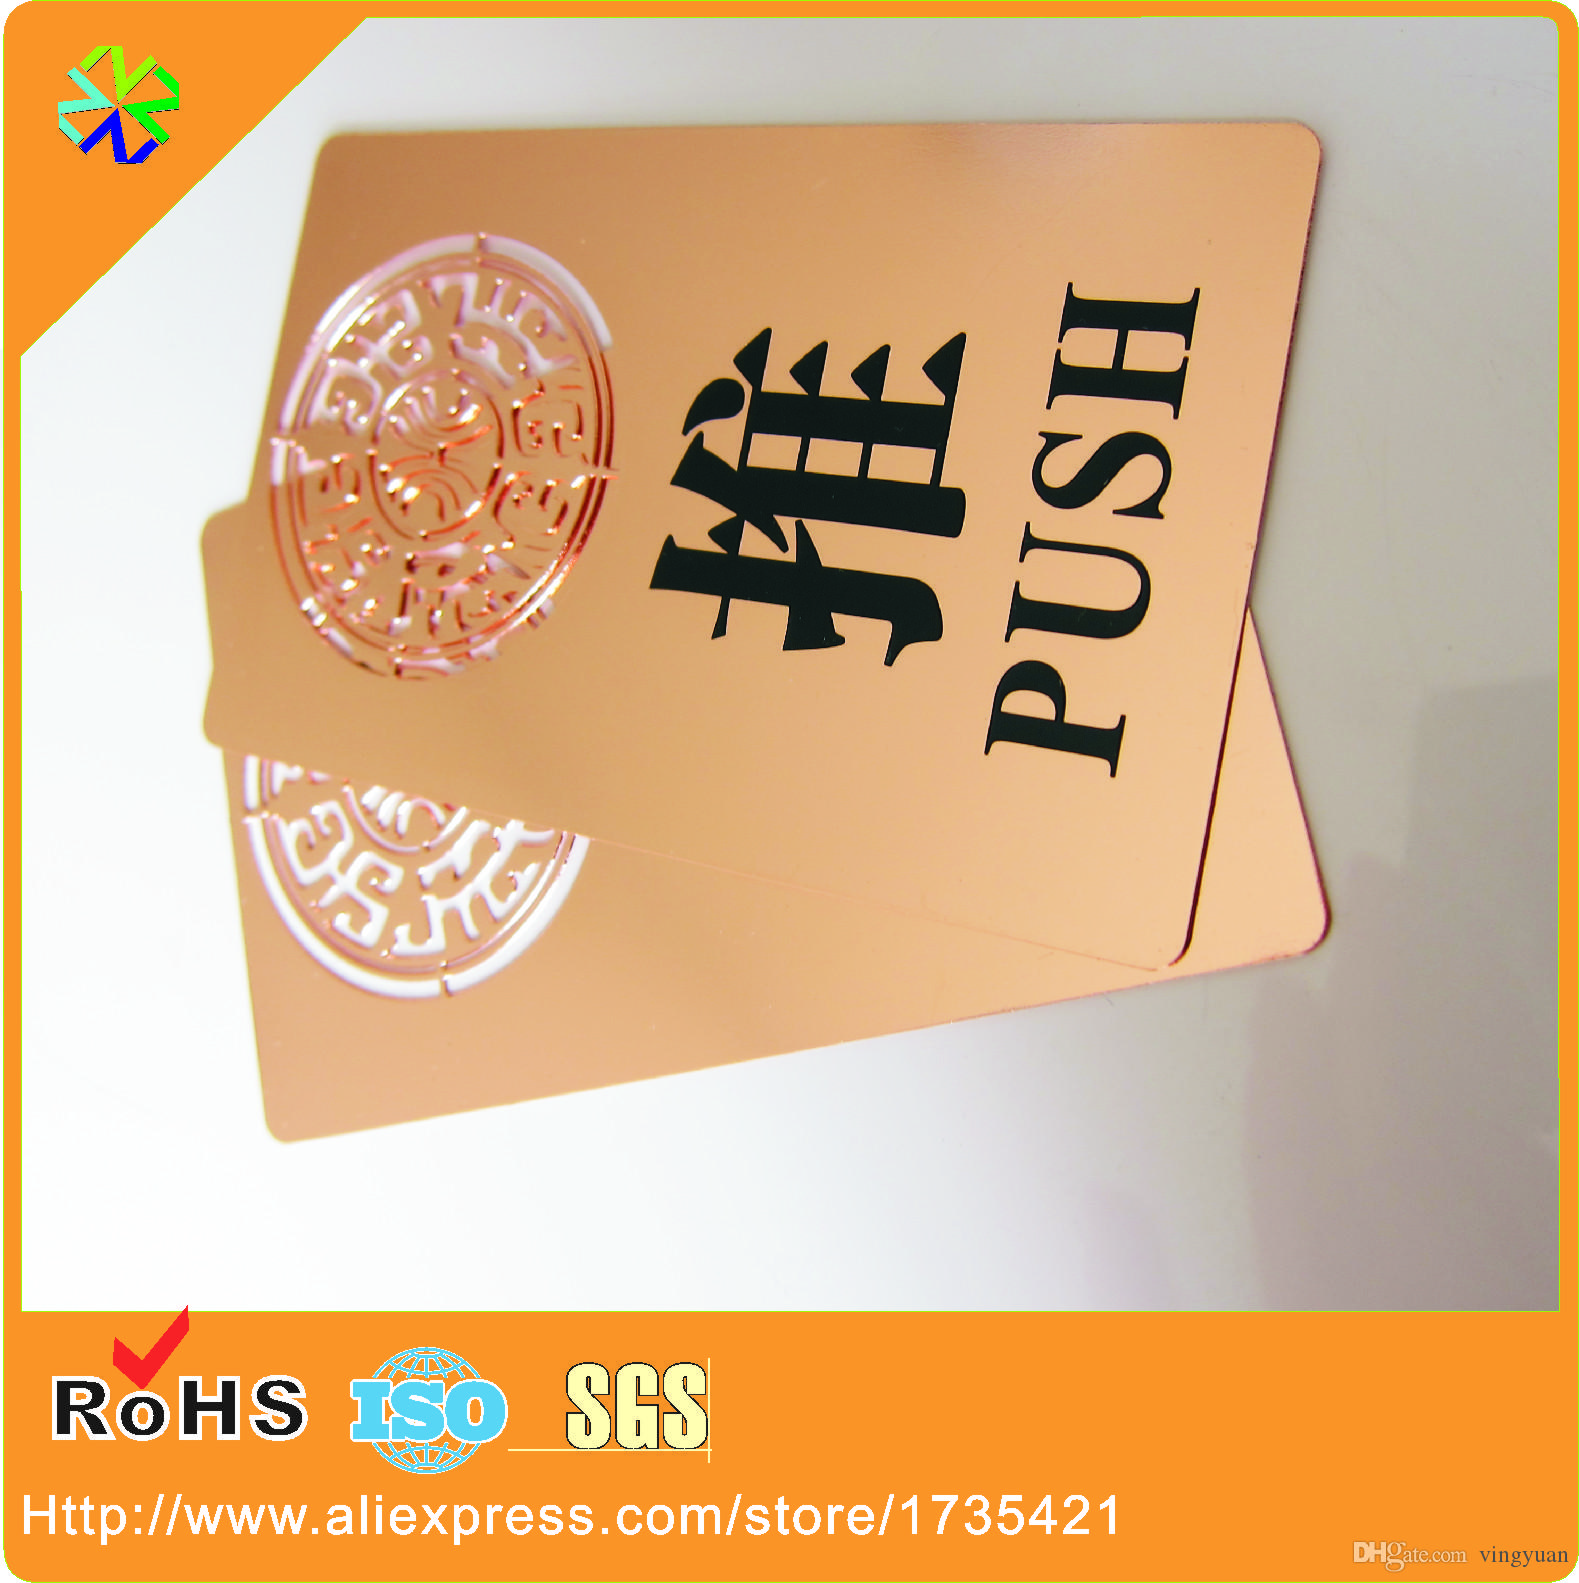 Custom made cheap rose gold metal business cards with printed logo custom made cheap rose gold metal business cards with printed logo metal card metal business card stainless steel card online with 19253piece on reheart Choice Image